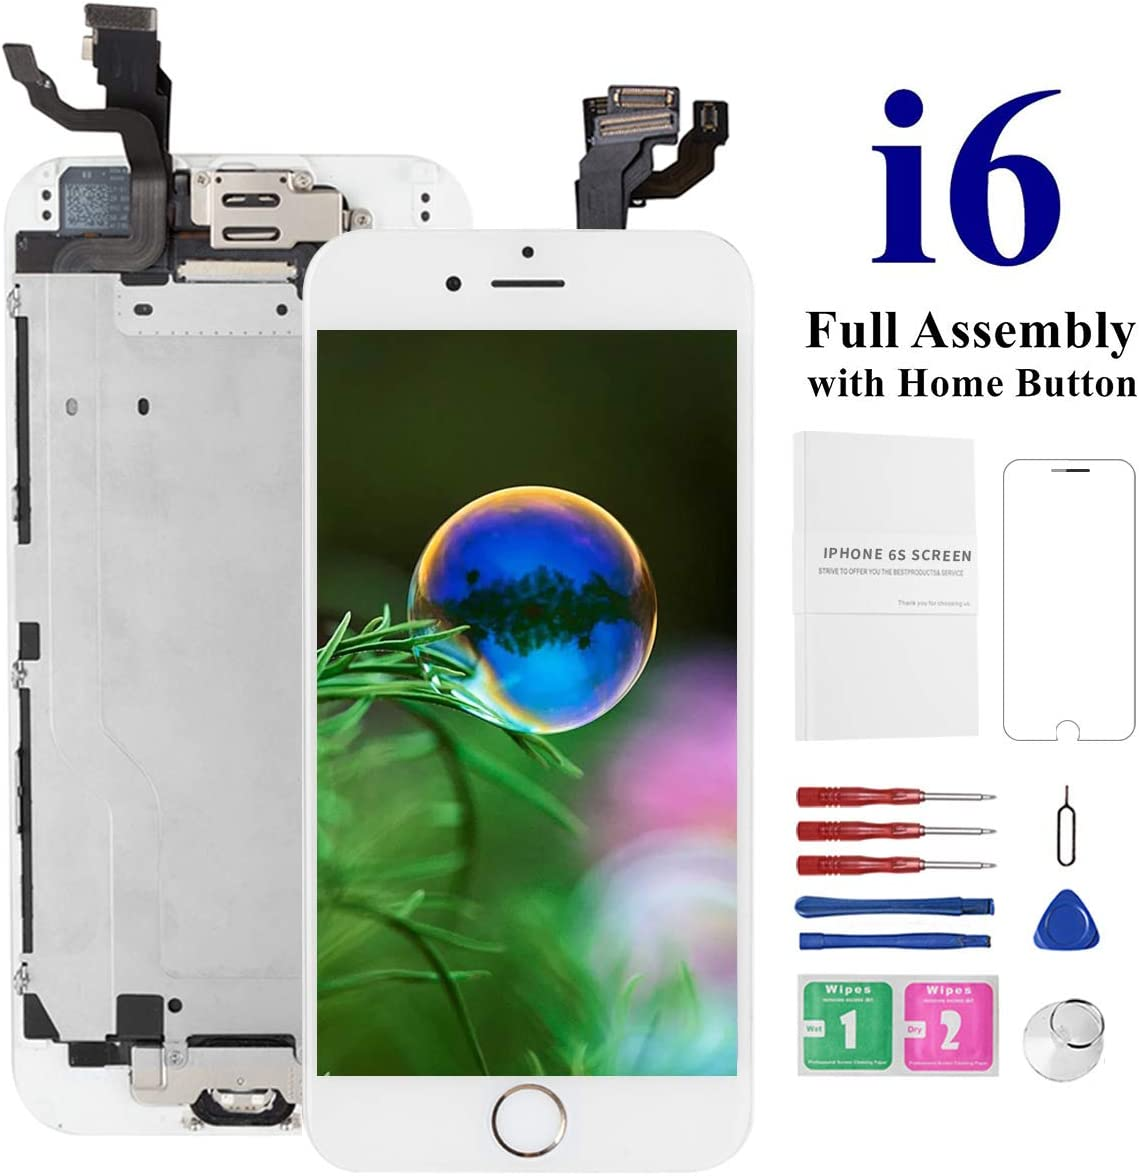 Screen Replacement Kit for iPhone 6 White, Model A1549, A1586, A1589, Mobkitfp Full Assembly LCD Digitizer Display Replacement with Front Camera, Ear Speaker and Light/Proximity Sensor